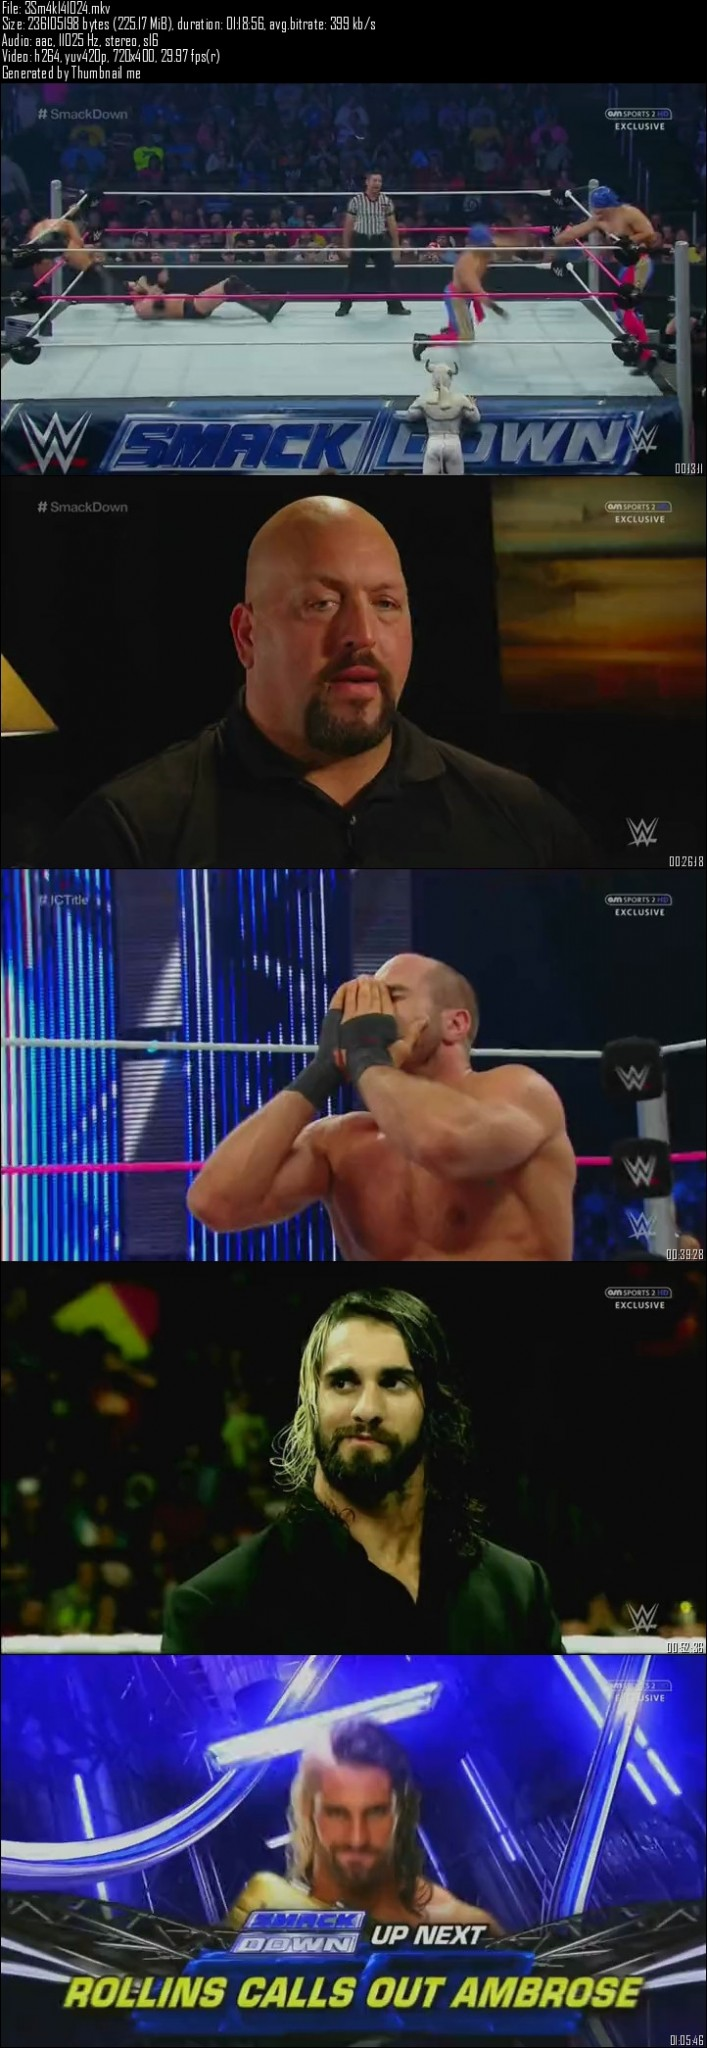 WWE Friday Night SmackDown 24th October (2014)